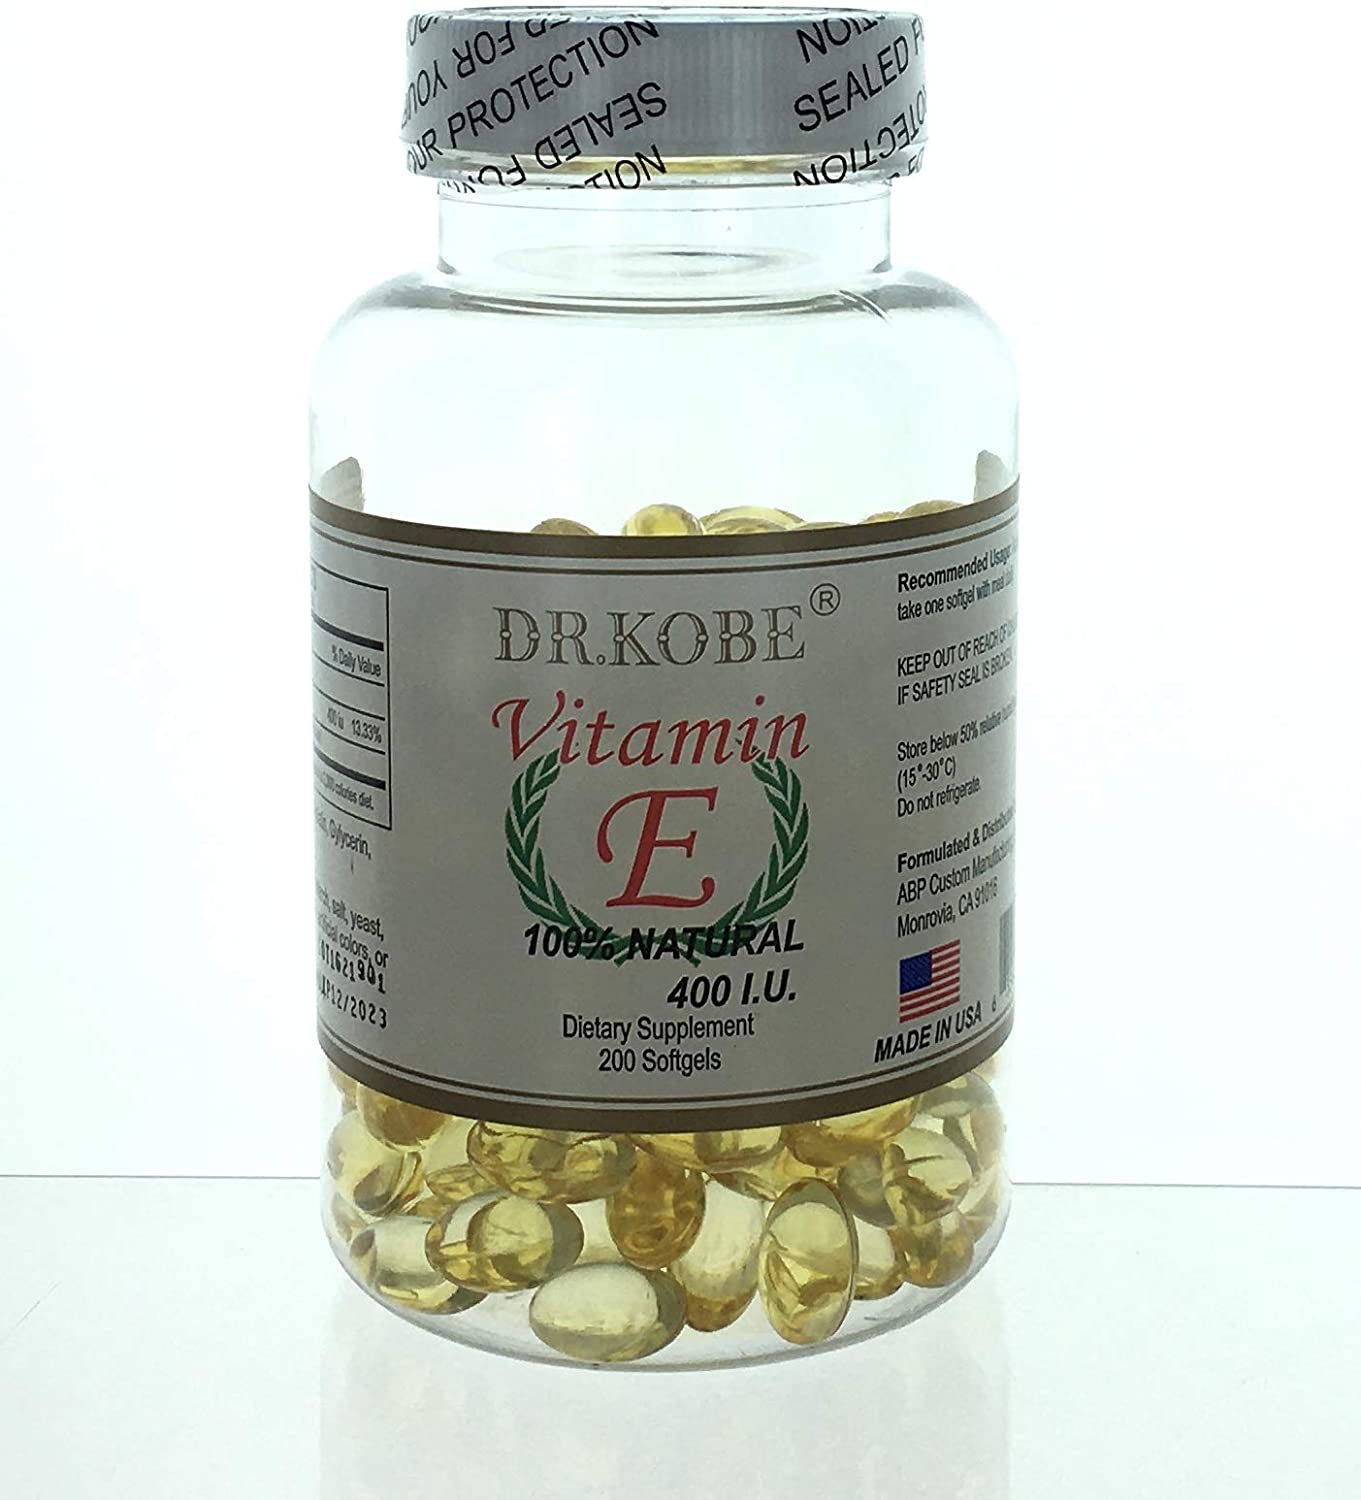 Vitamin E 400 IU - latest Natural Anti-Oxidation 200 Improve Softgels Today's only I